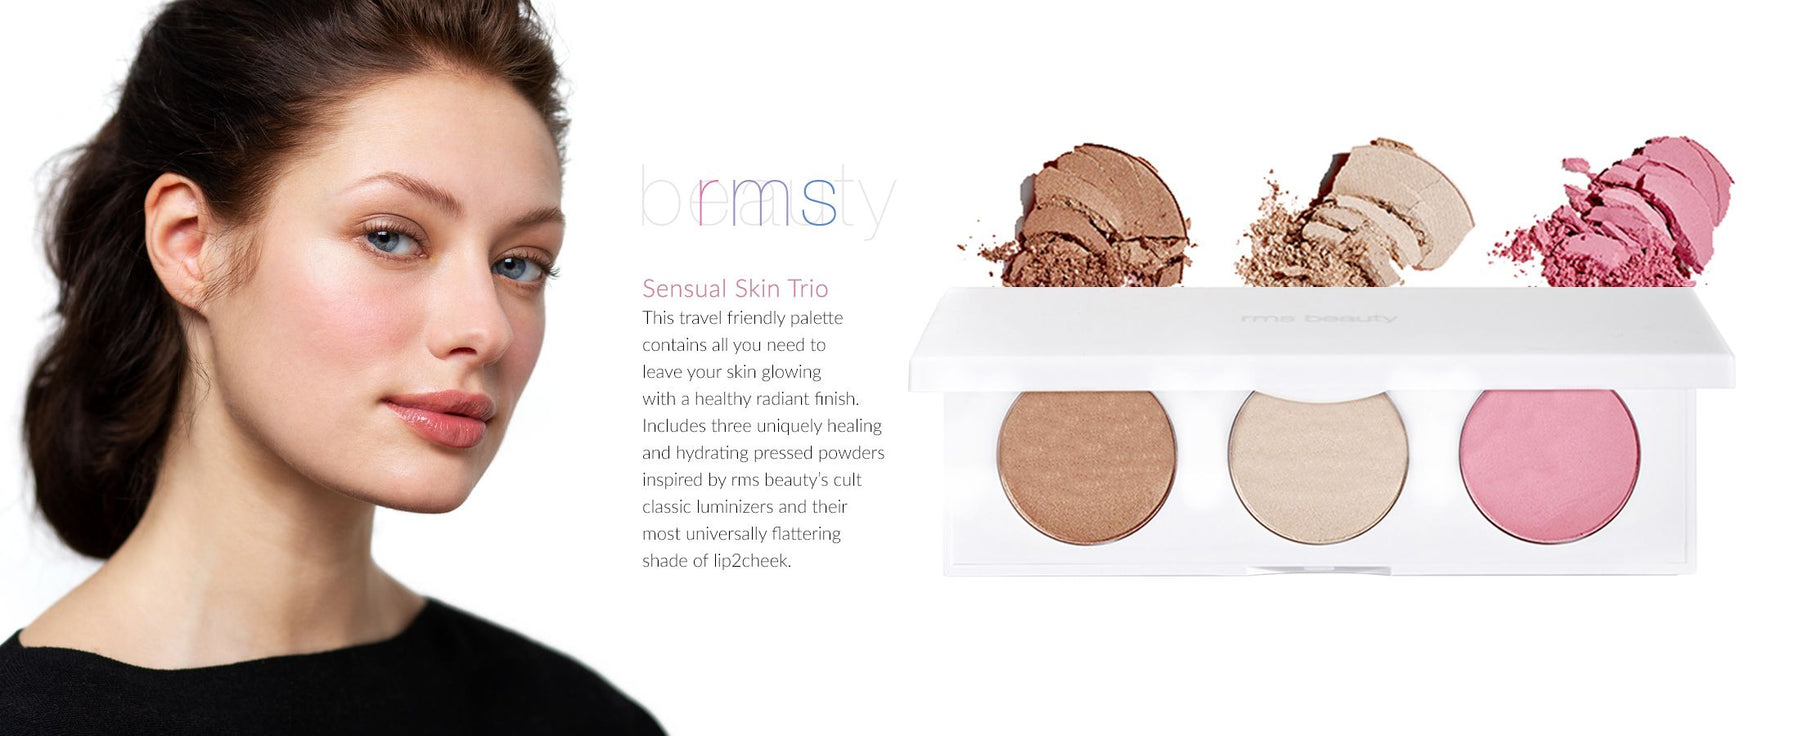 rms beauty Sensual Skin Trio. This travel friendly palette leaves your skin glowing with a healthy radiant finish. Includes uniquely healing & hydrating pressed powders inspired by rms beauty's cult classic luminizers & their flattering shade of lip2cheek